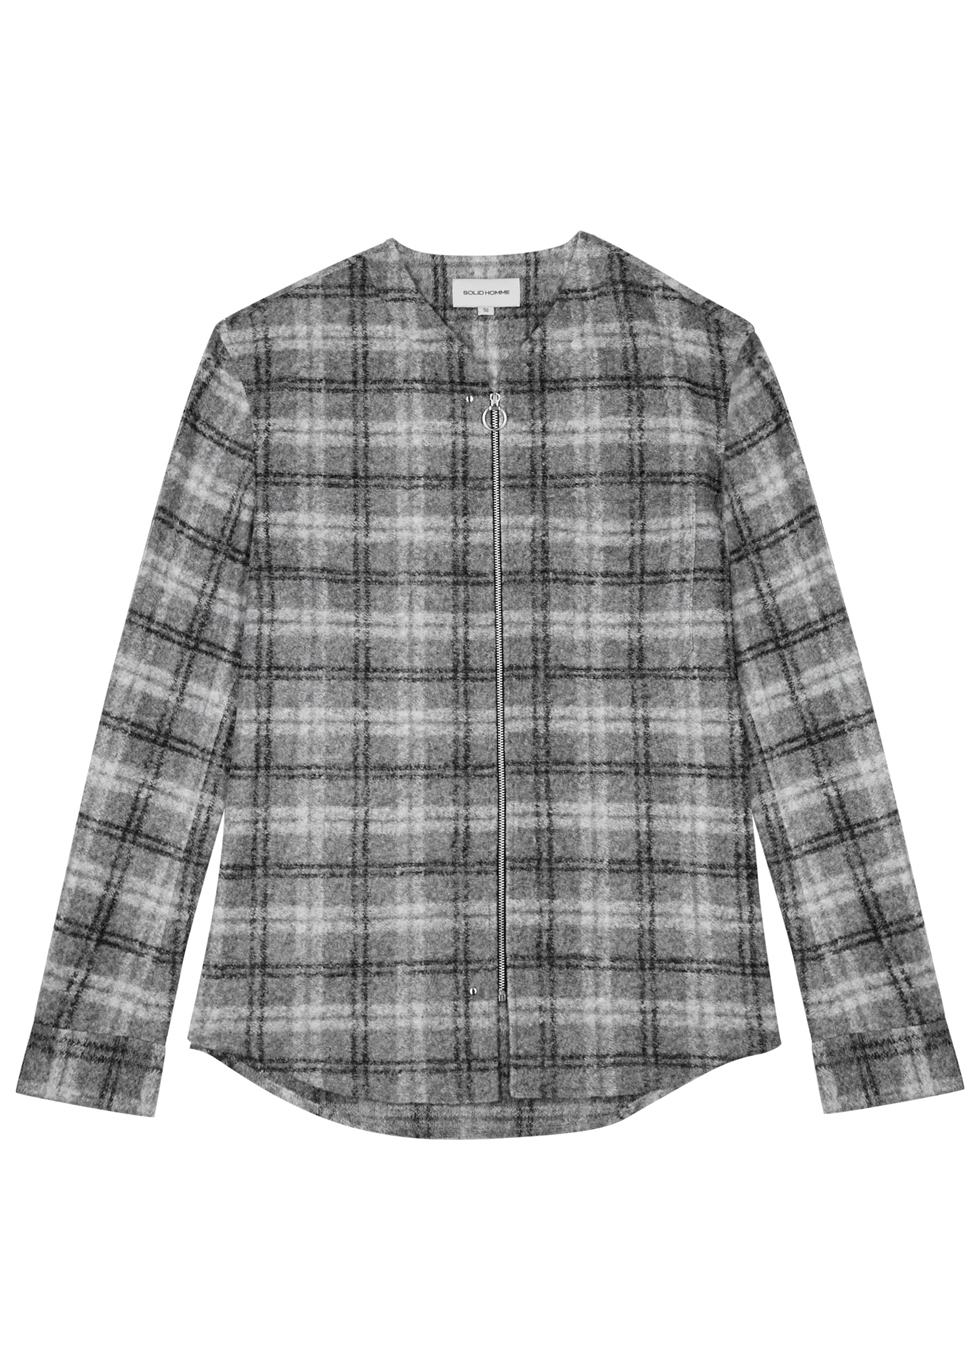 SOLID HOMME GREY CHECKED TEXTURED SHIRT